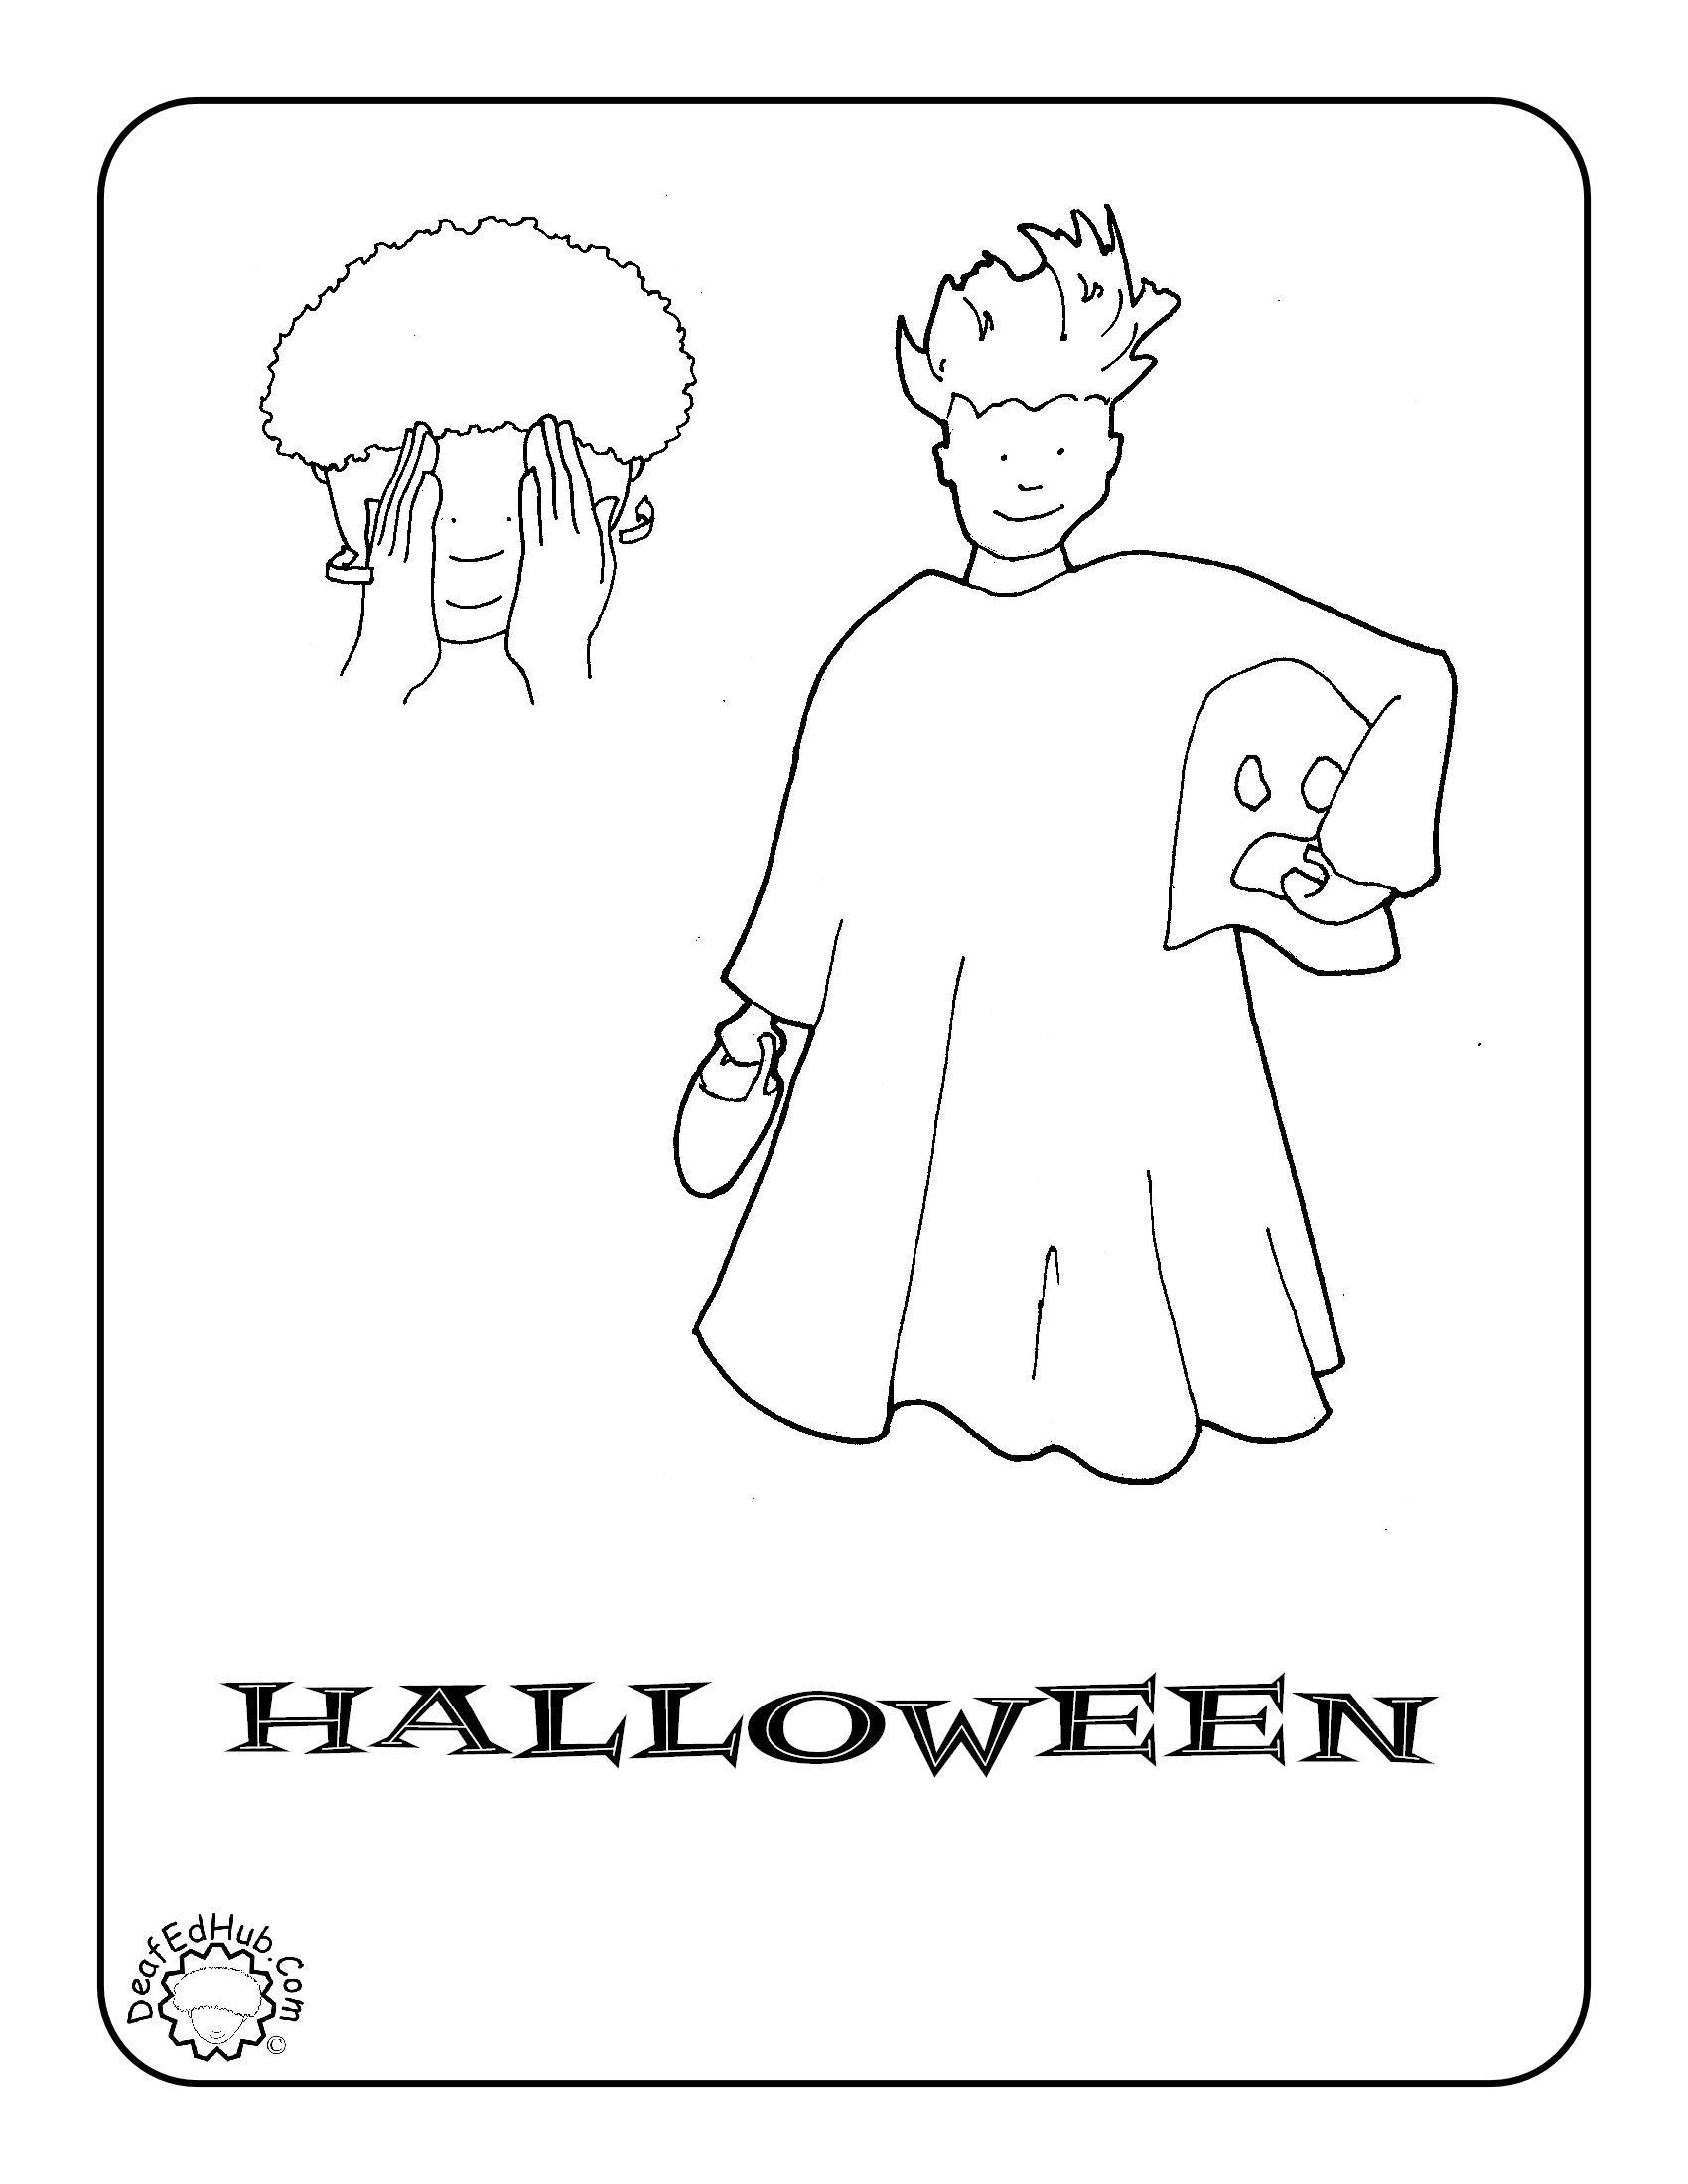 Sign Language Worksheets for Kids Halloween Coloring Sign Language for Kids asl Practice